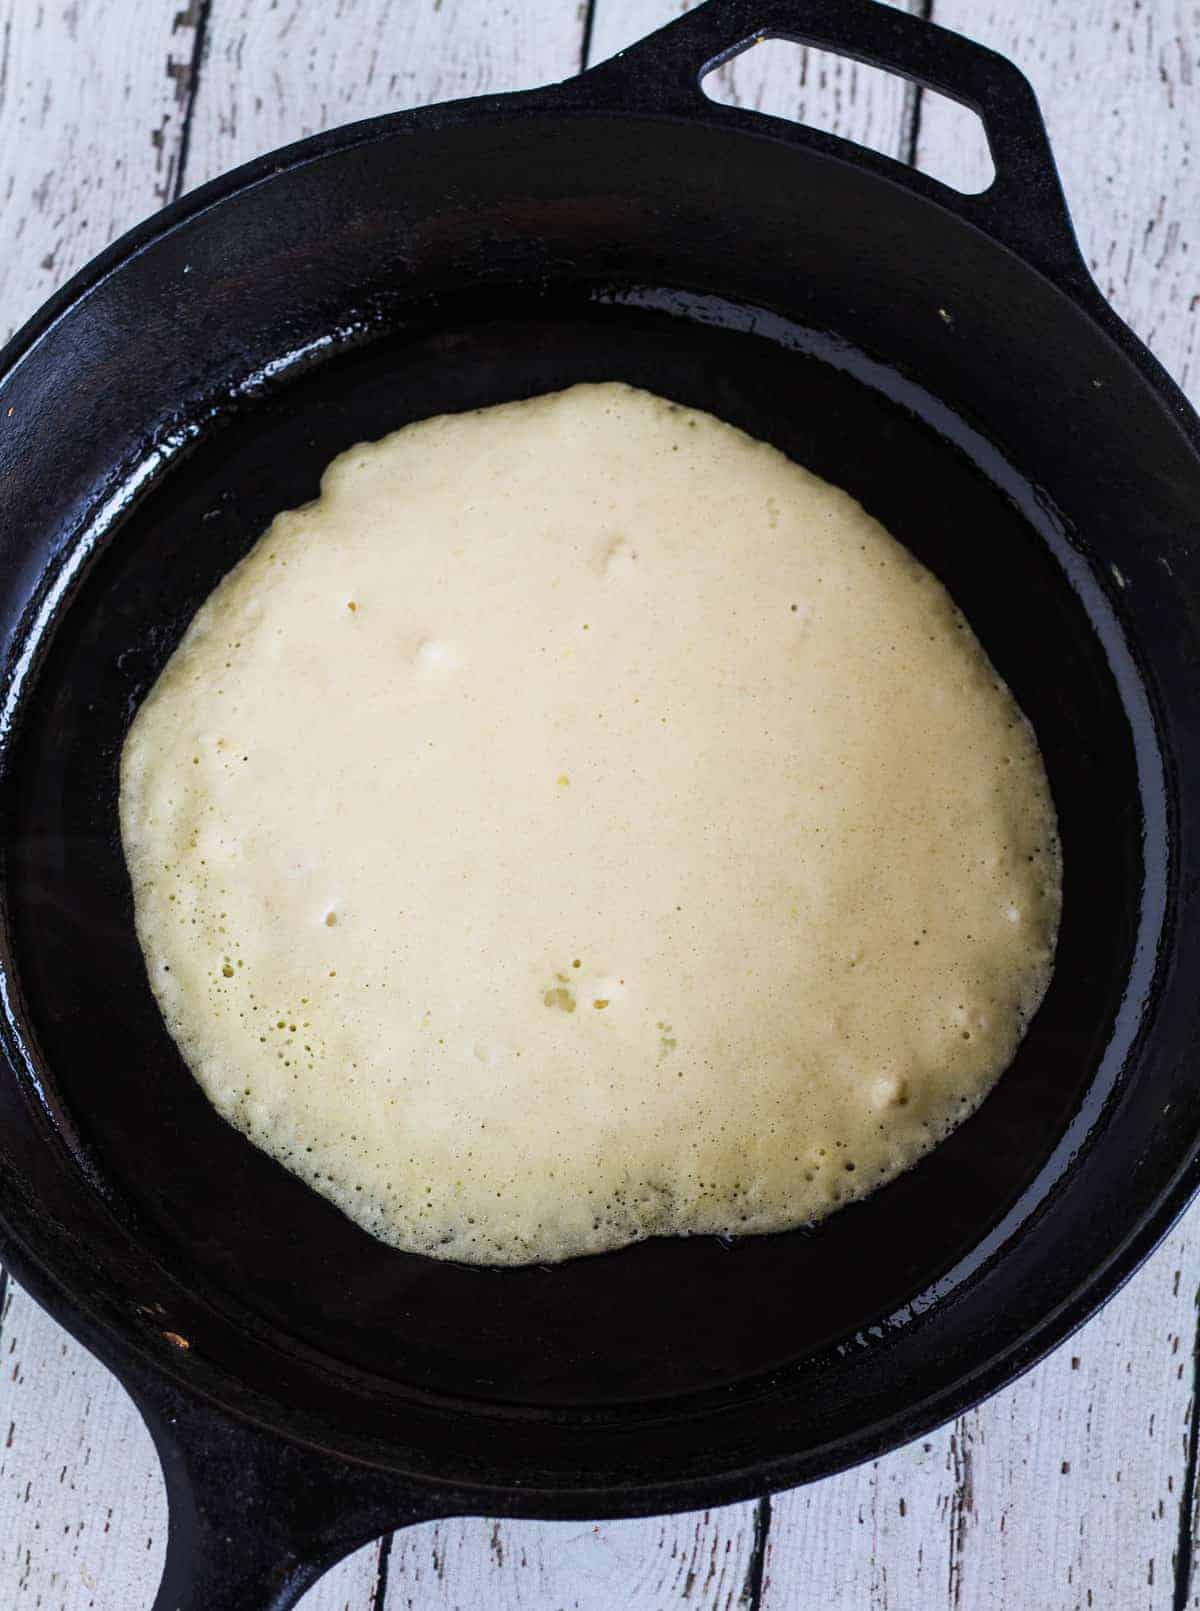 batter cooking in cast iron skillet